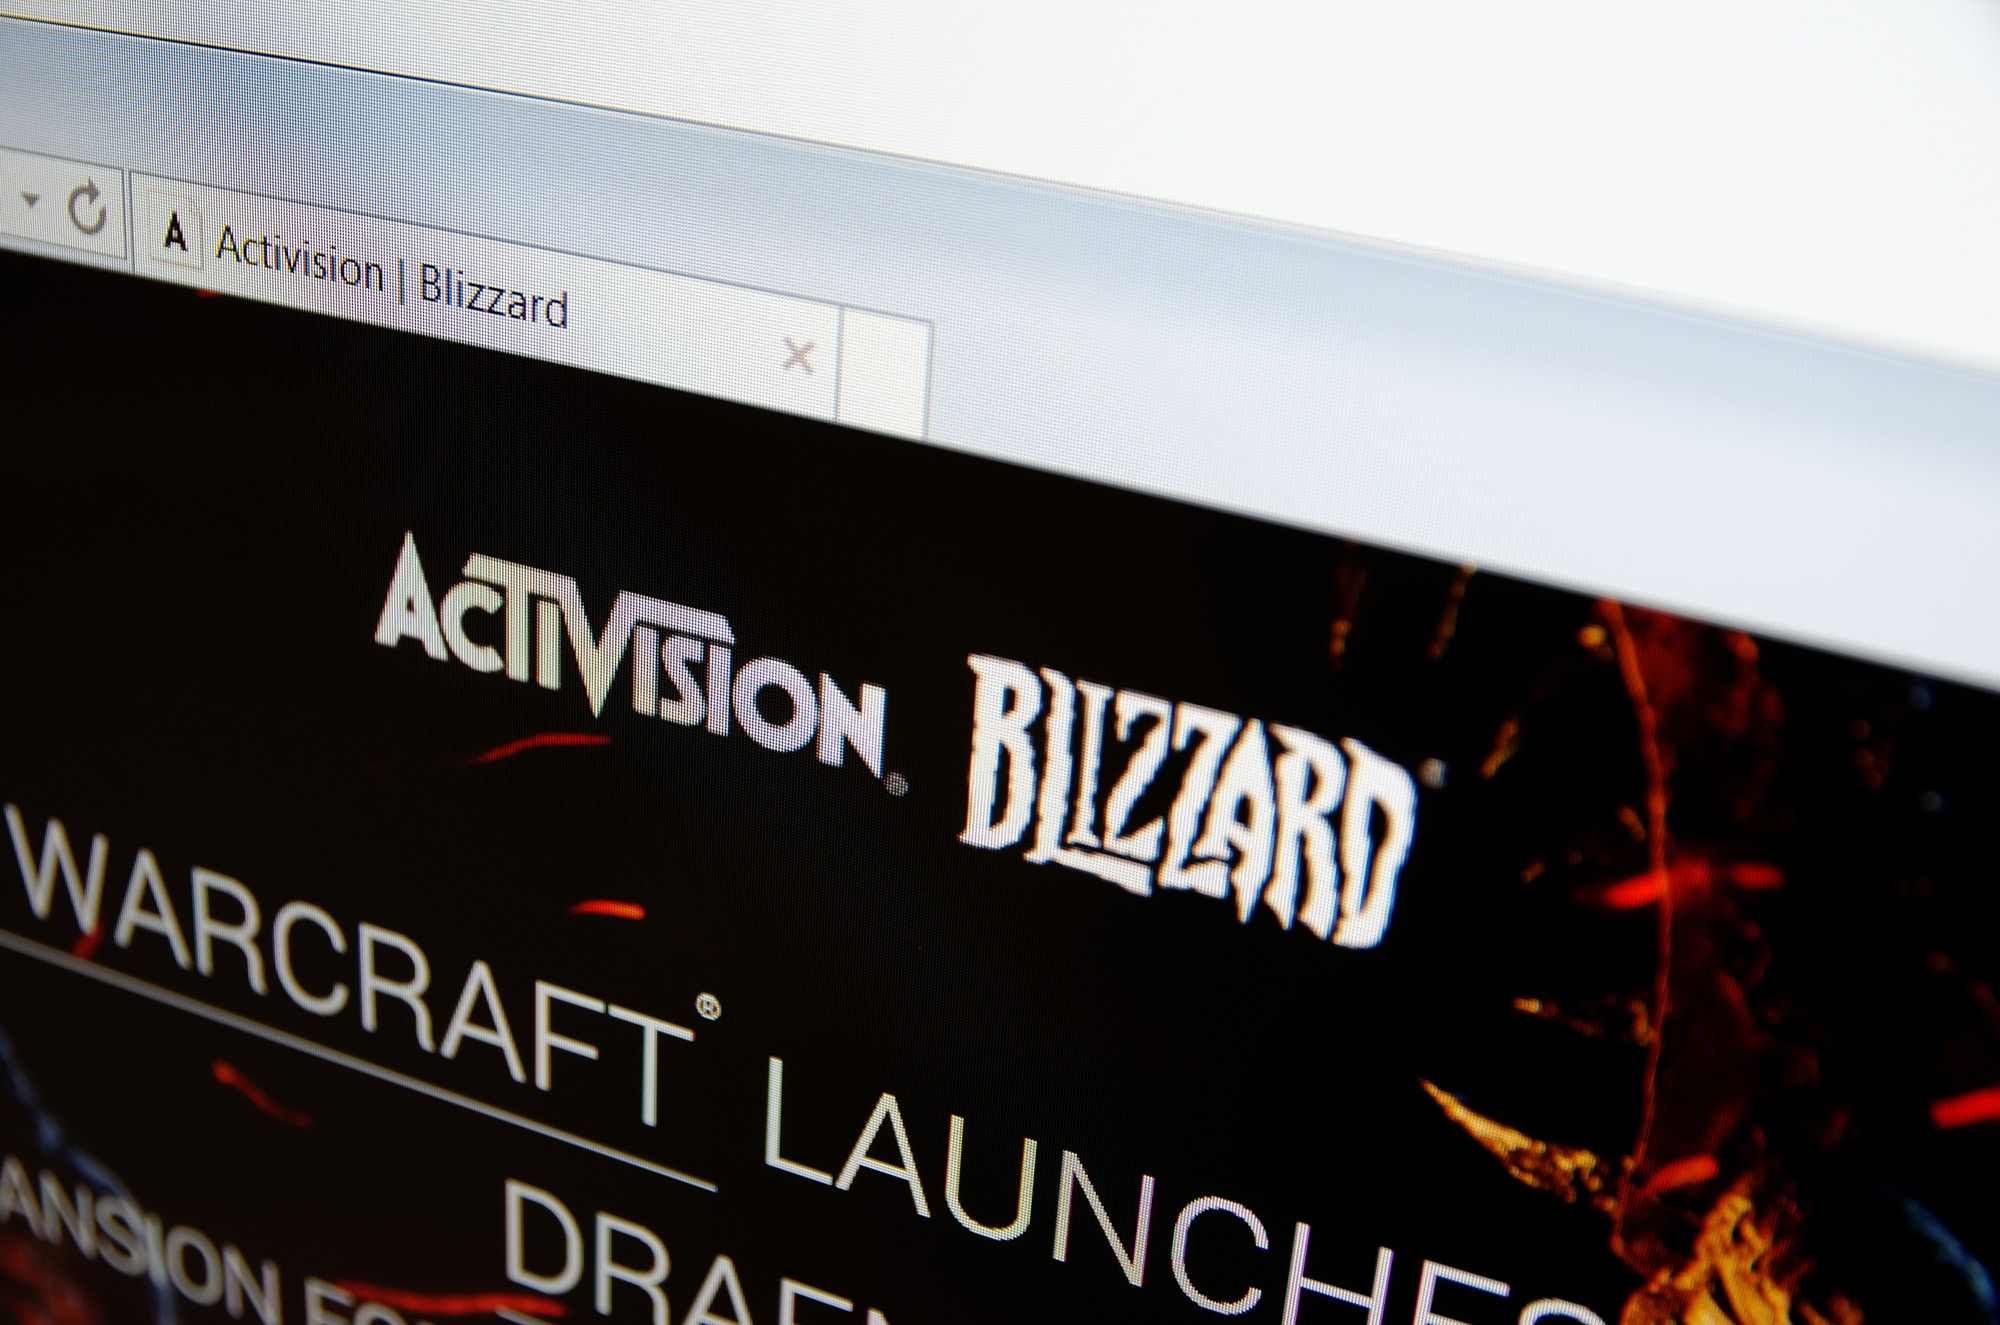 Photo of Blizzard Spiele künftig mit Facebook-Login und -Livestreaming